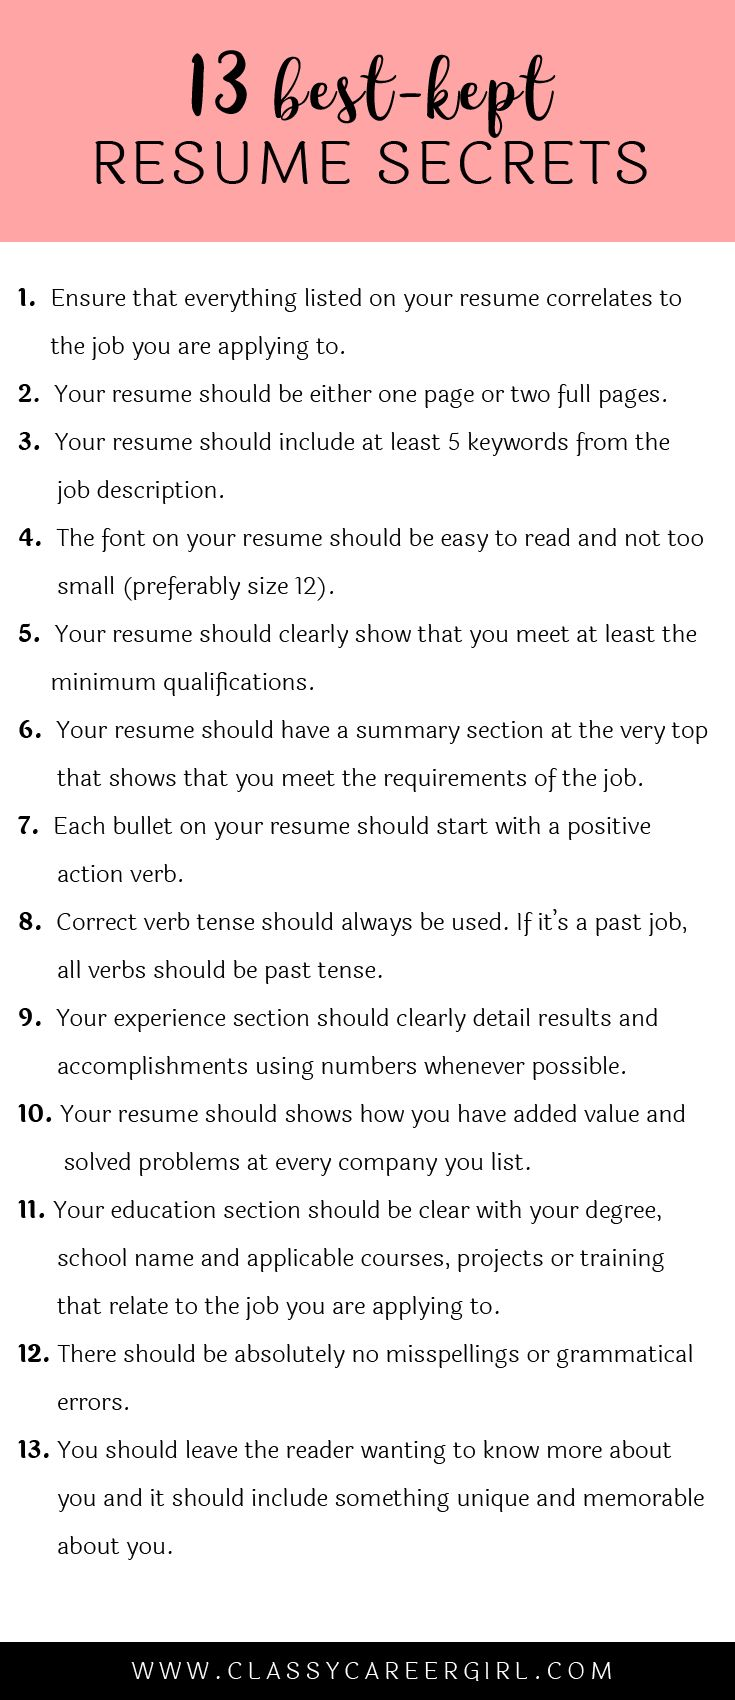 Unique Best Resume Template Ideas On Pinterest Resume Ideas - 10 best kept business secrets world